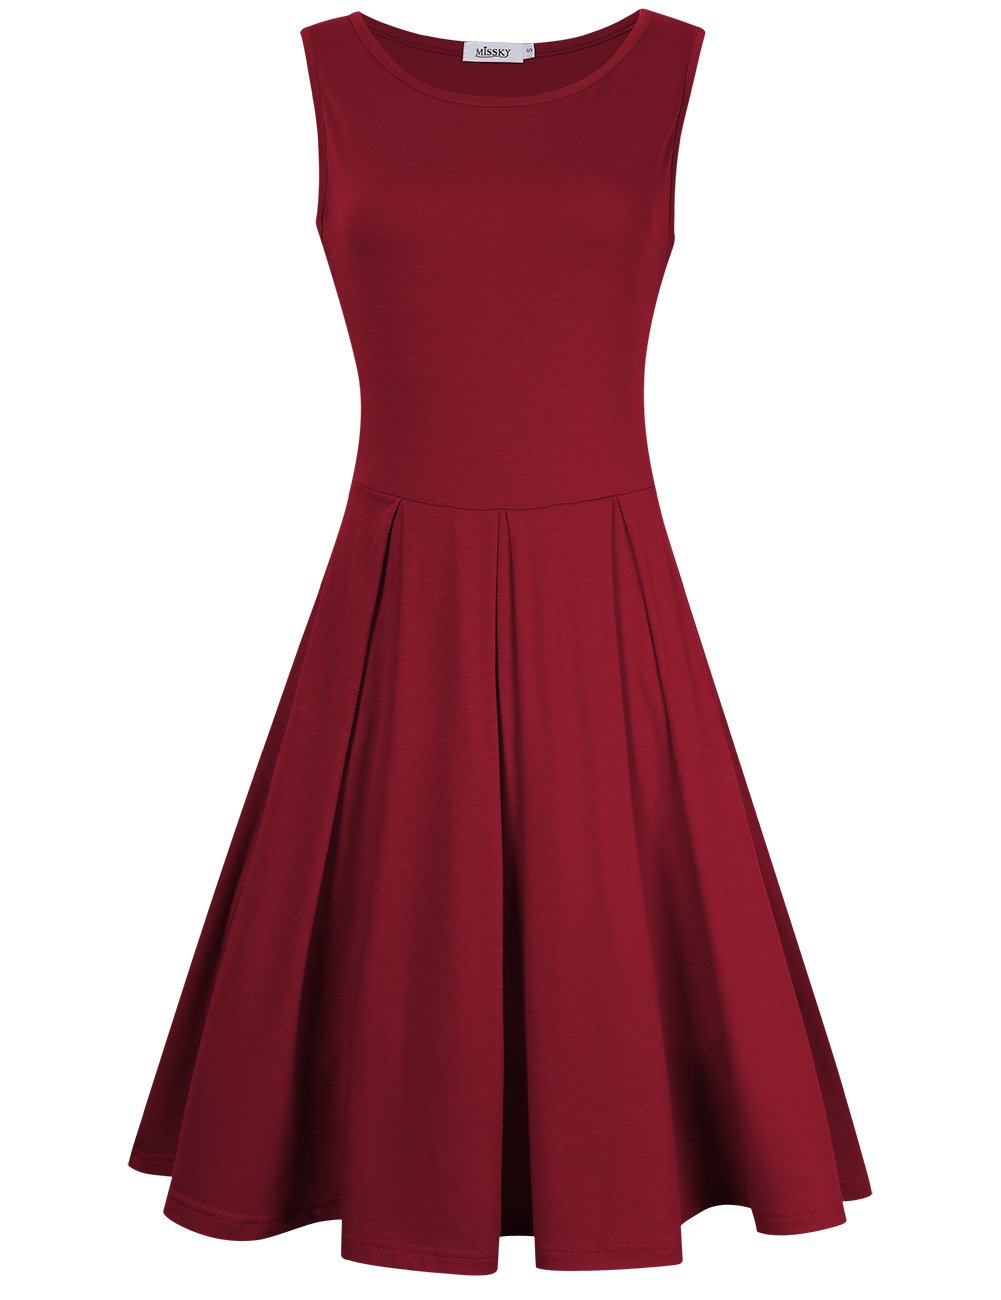 MISSKY Women Sleeveless Round Neck Knee Length Fit Flare Swing Casual Vintage Summer Dress (S, Burgundy-90) by MISSKY